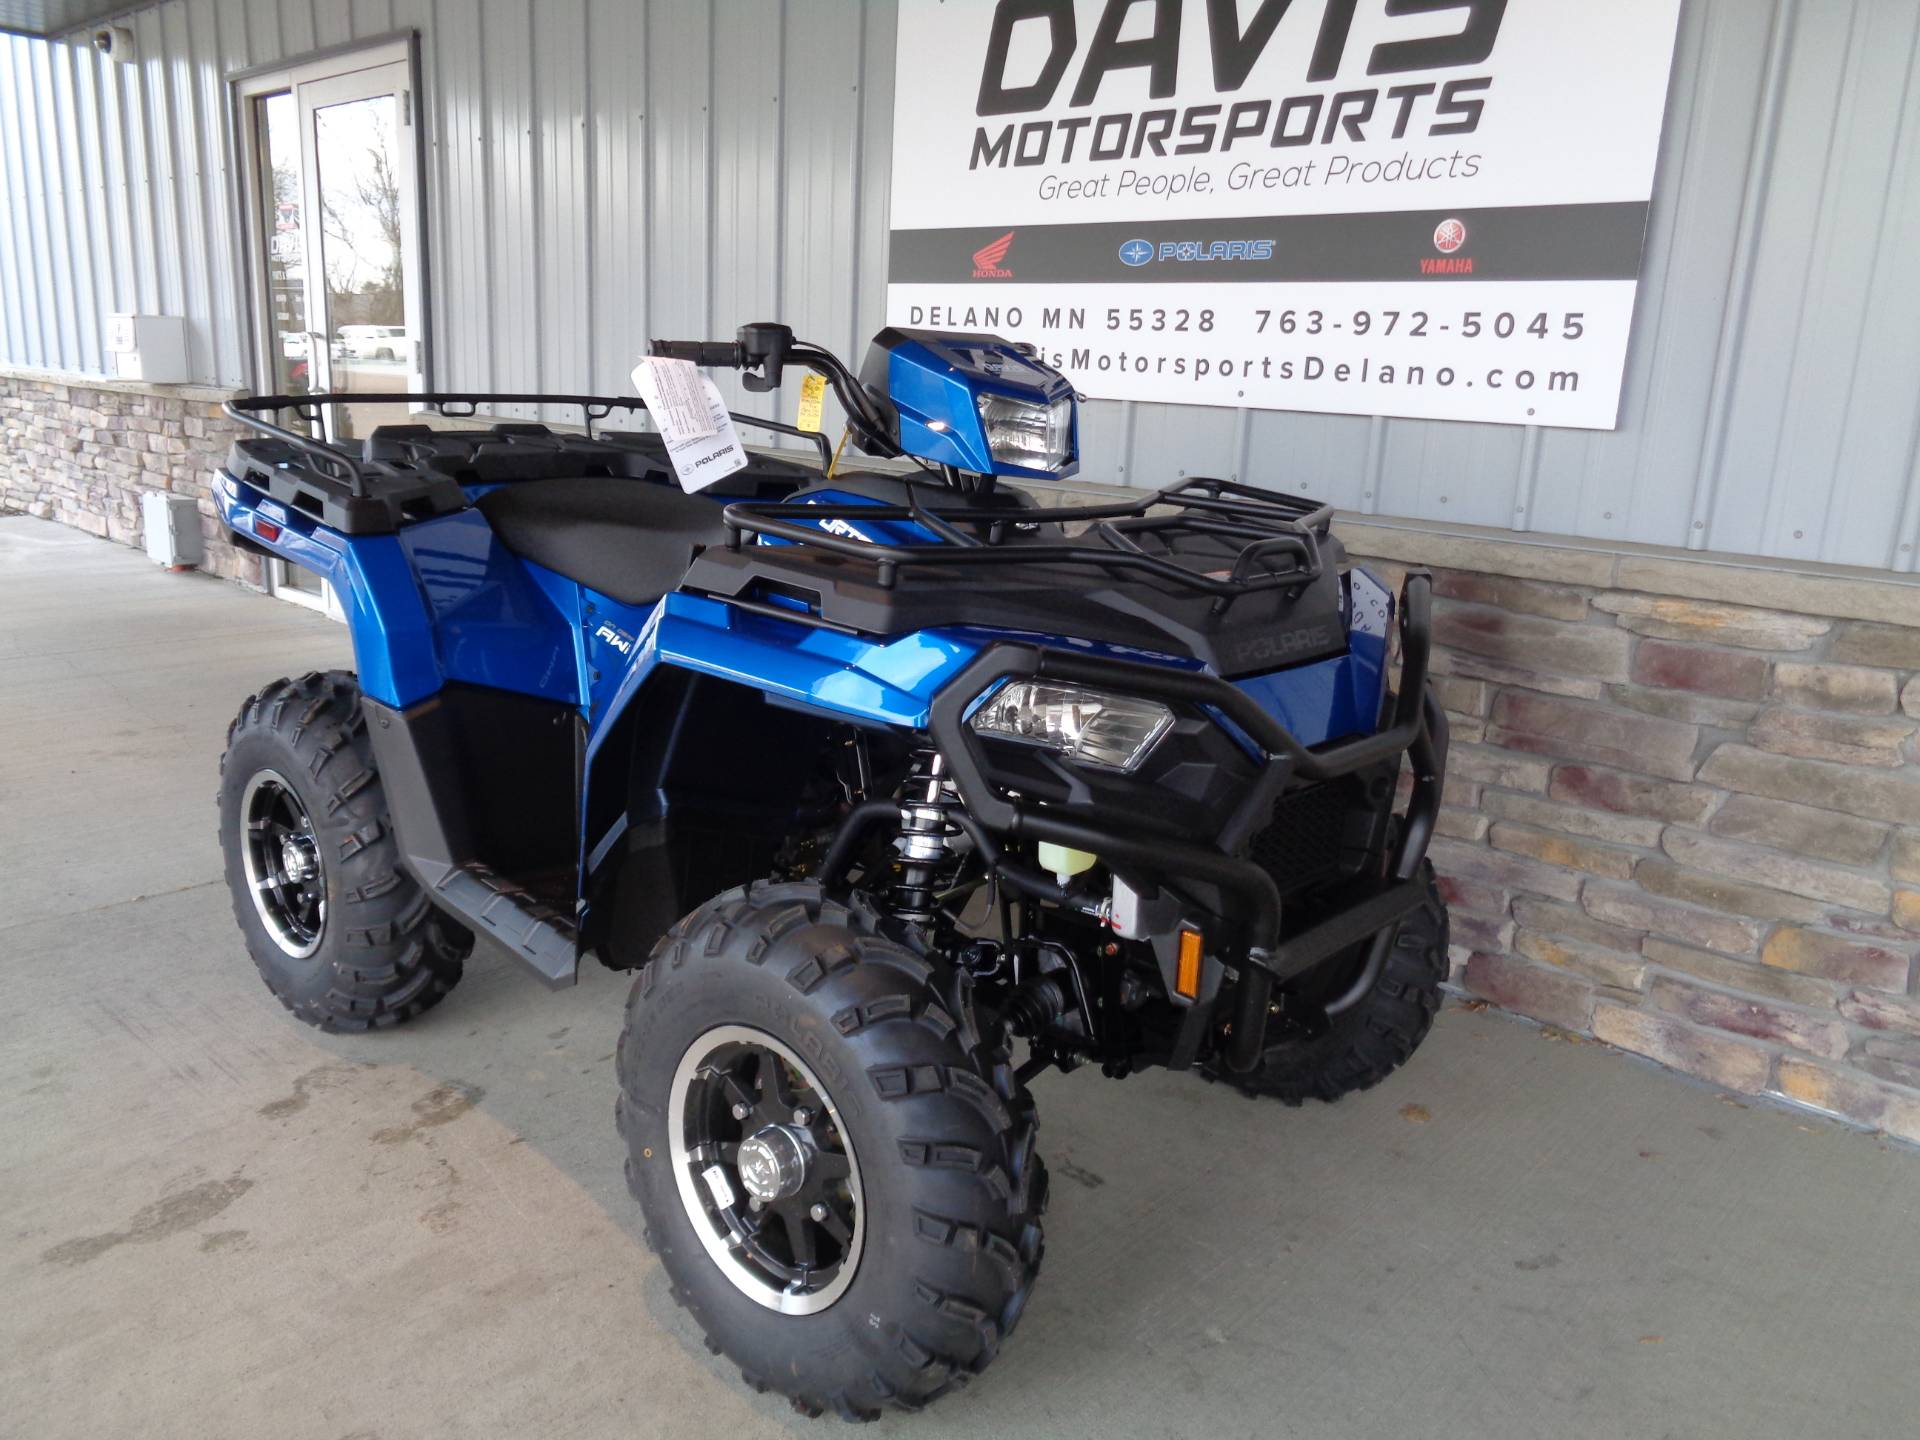 2021 Polaris Sportsman 570 Premium in Delano, Minnesota - Photo 3